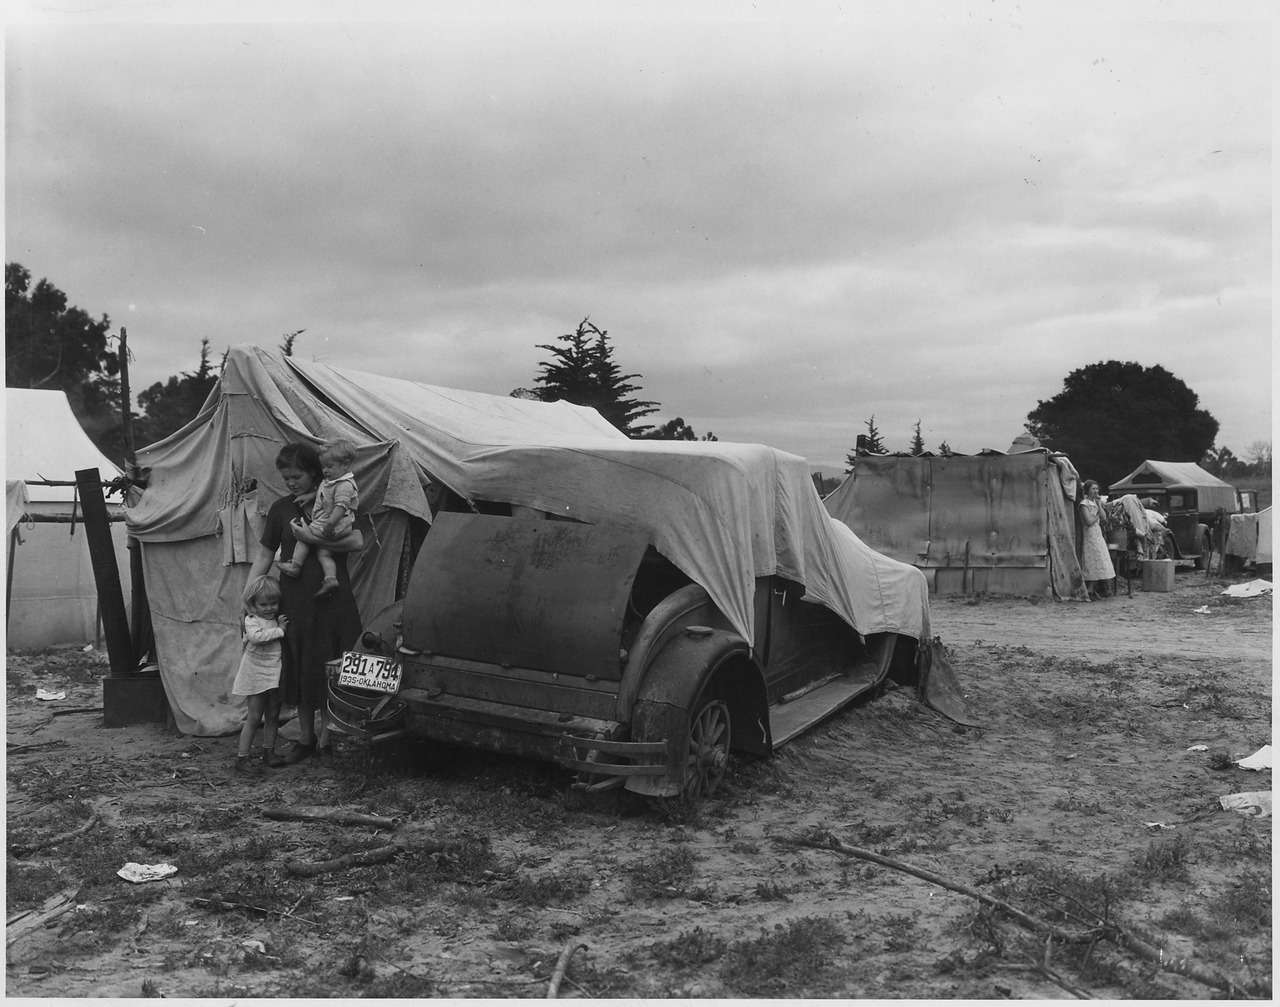 Migrant family near their temporary home during the Great Depression